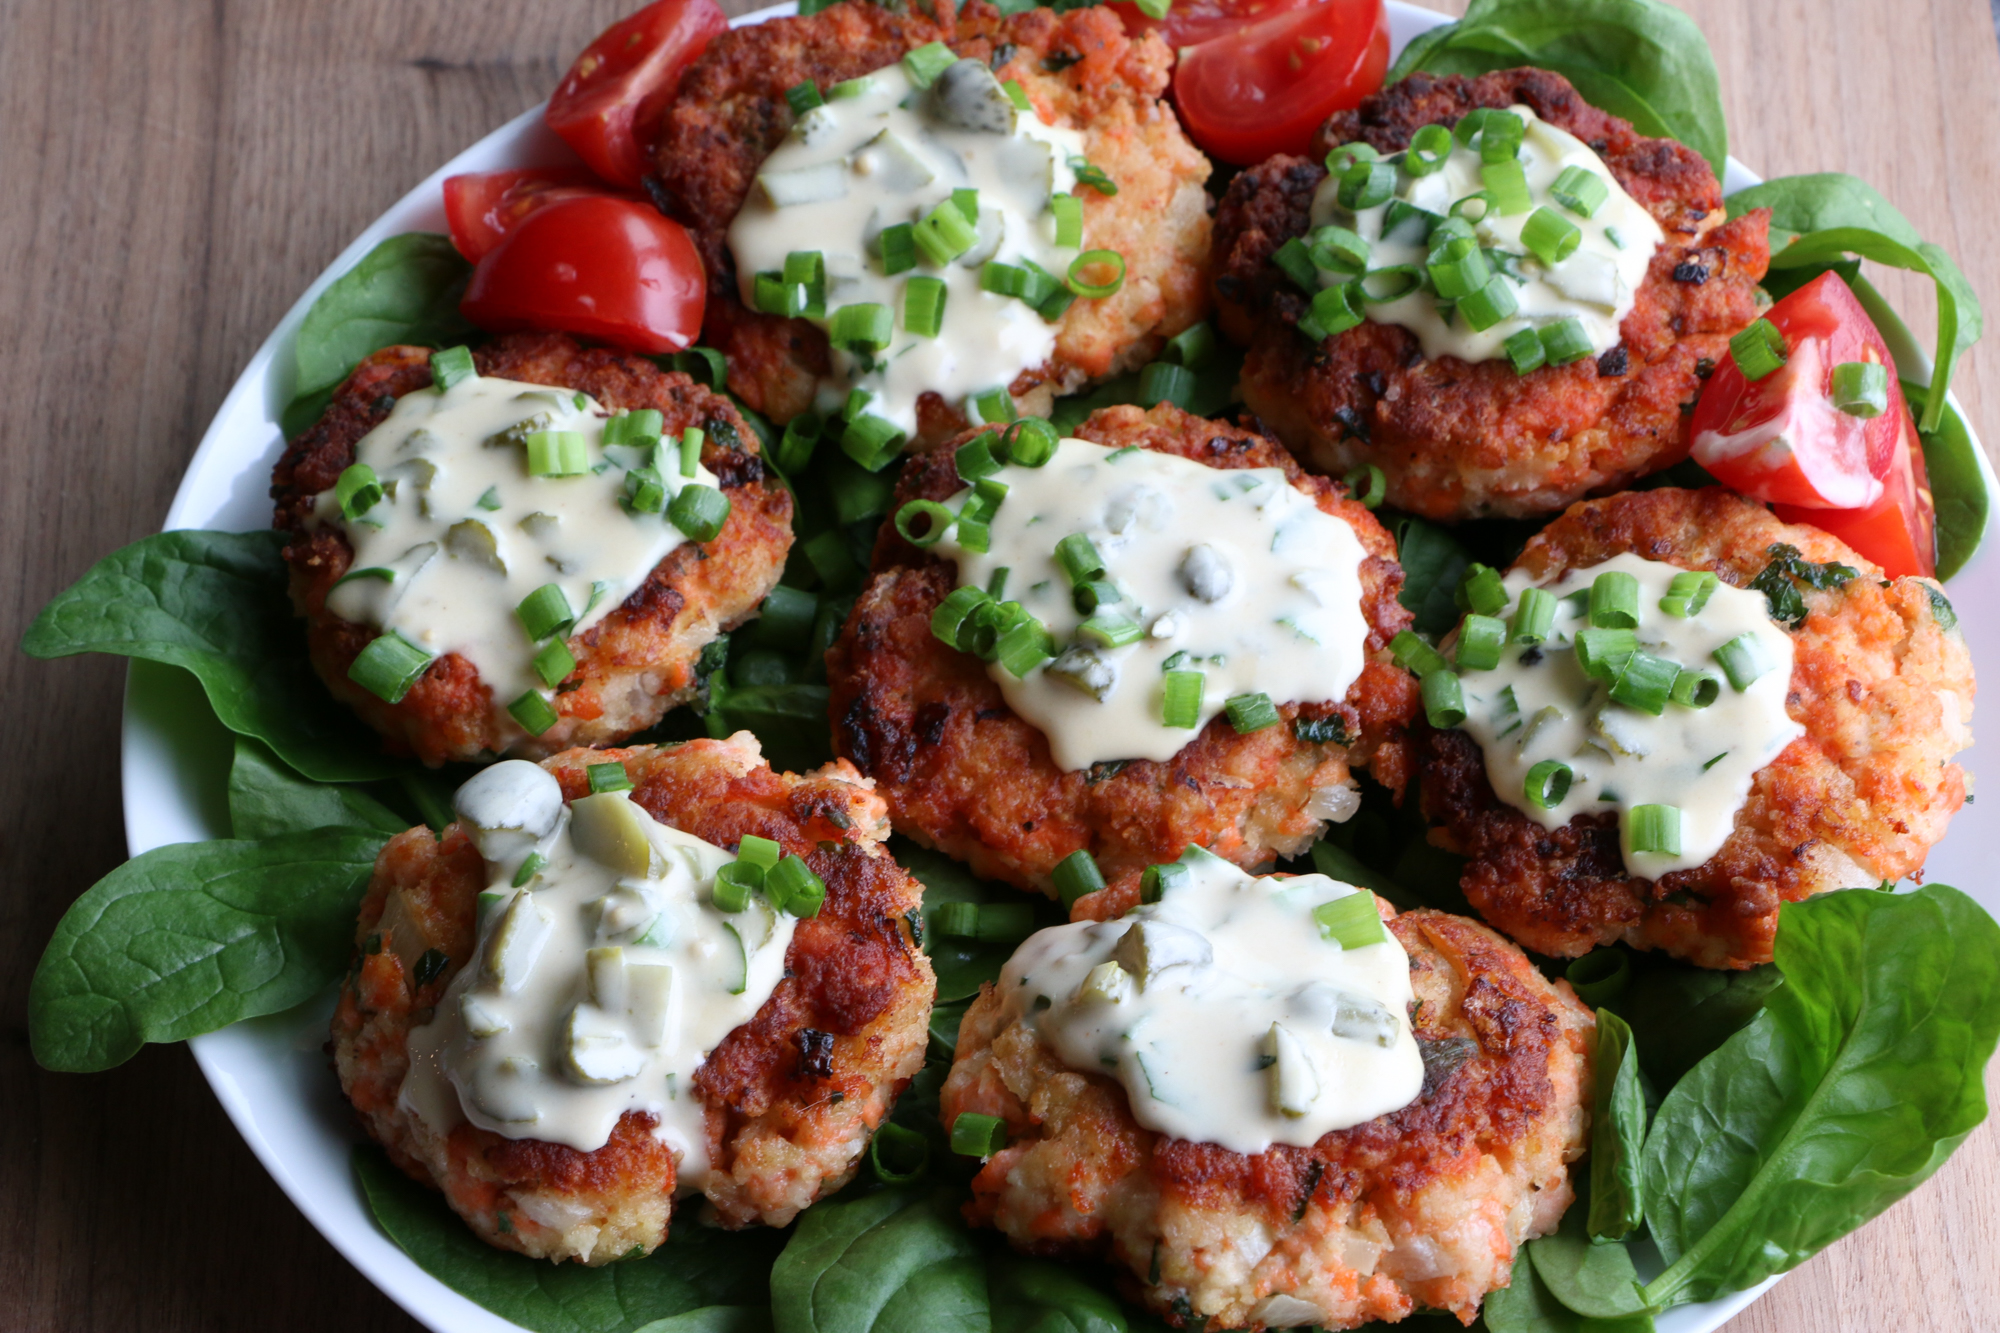 How To Make Salmon Cakes! Delicious and so easy to make! Topped with a homemade tartar sauce, we really hope you try this recipe!